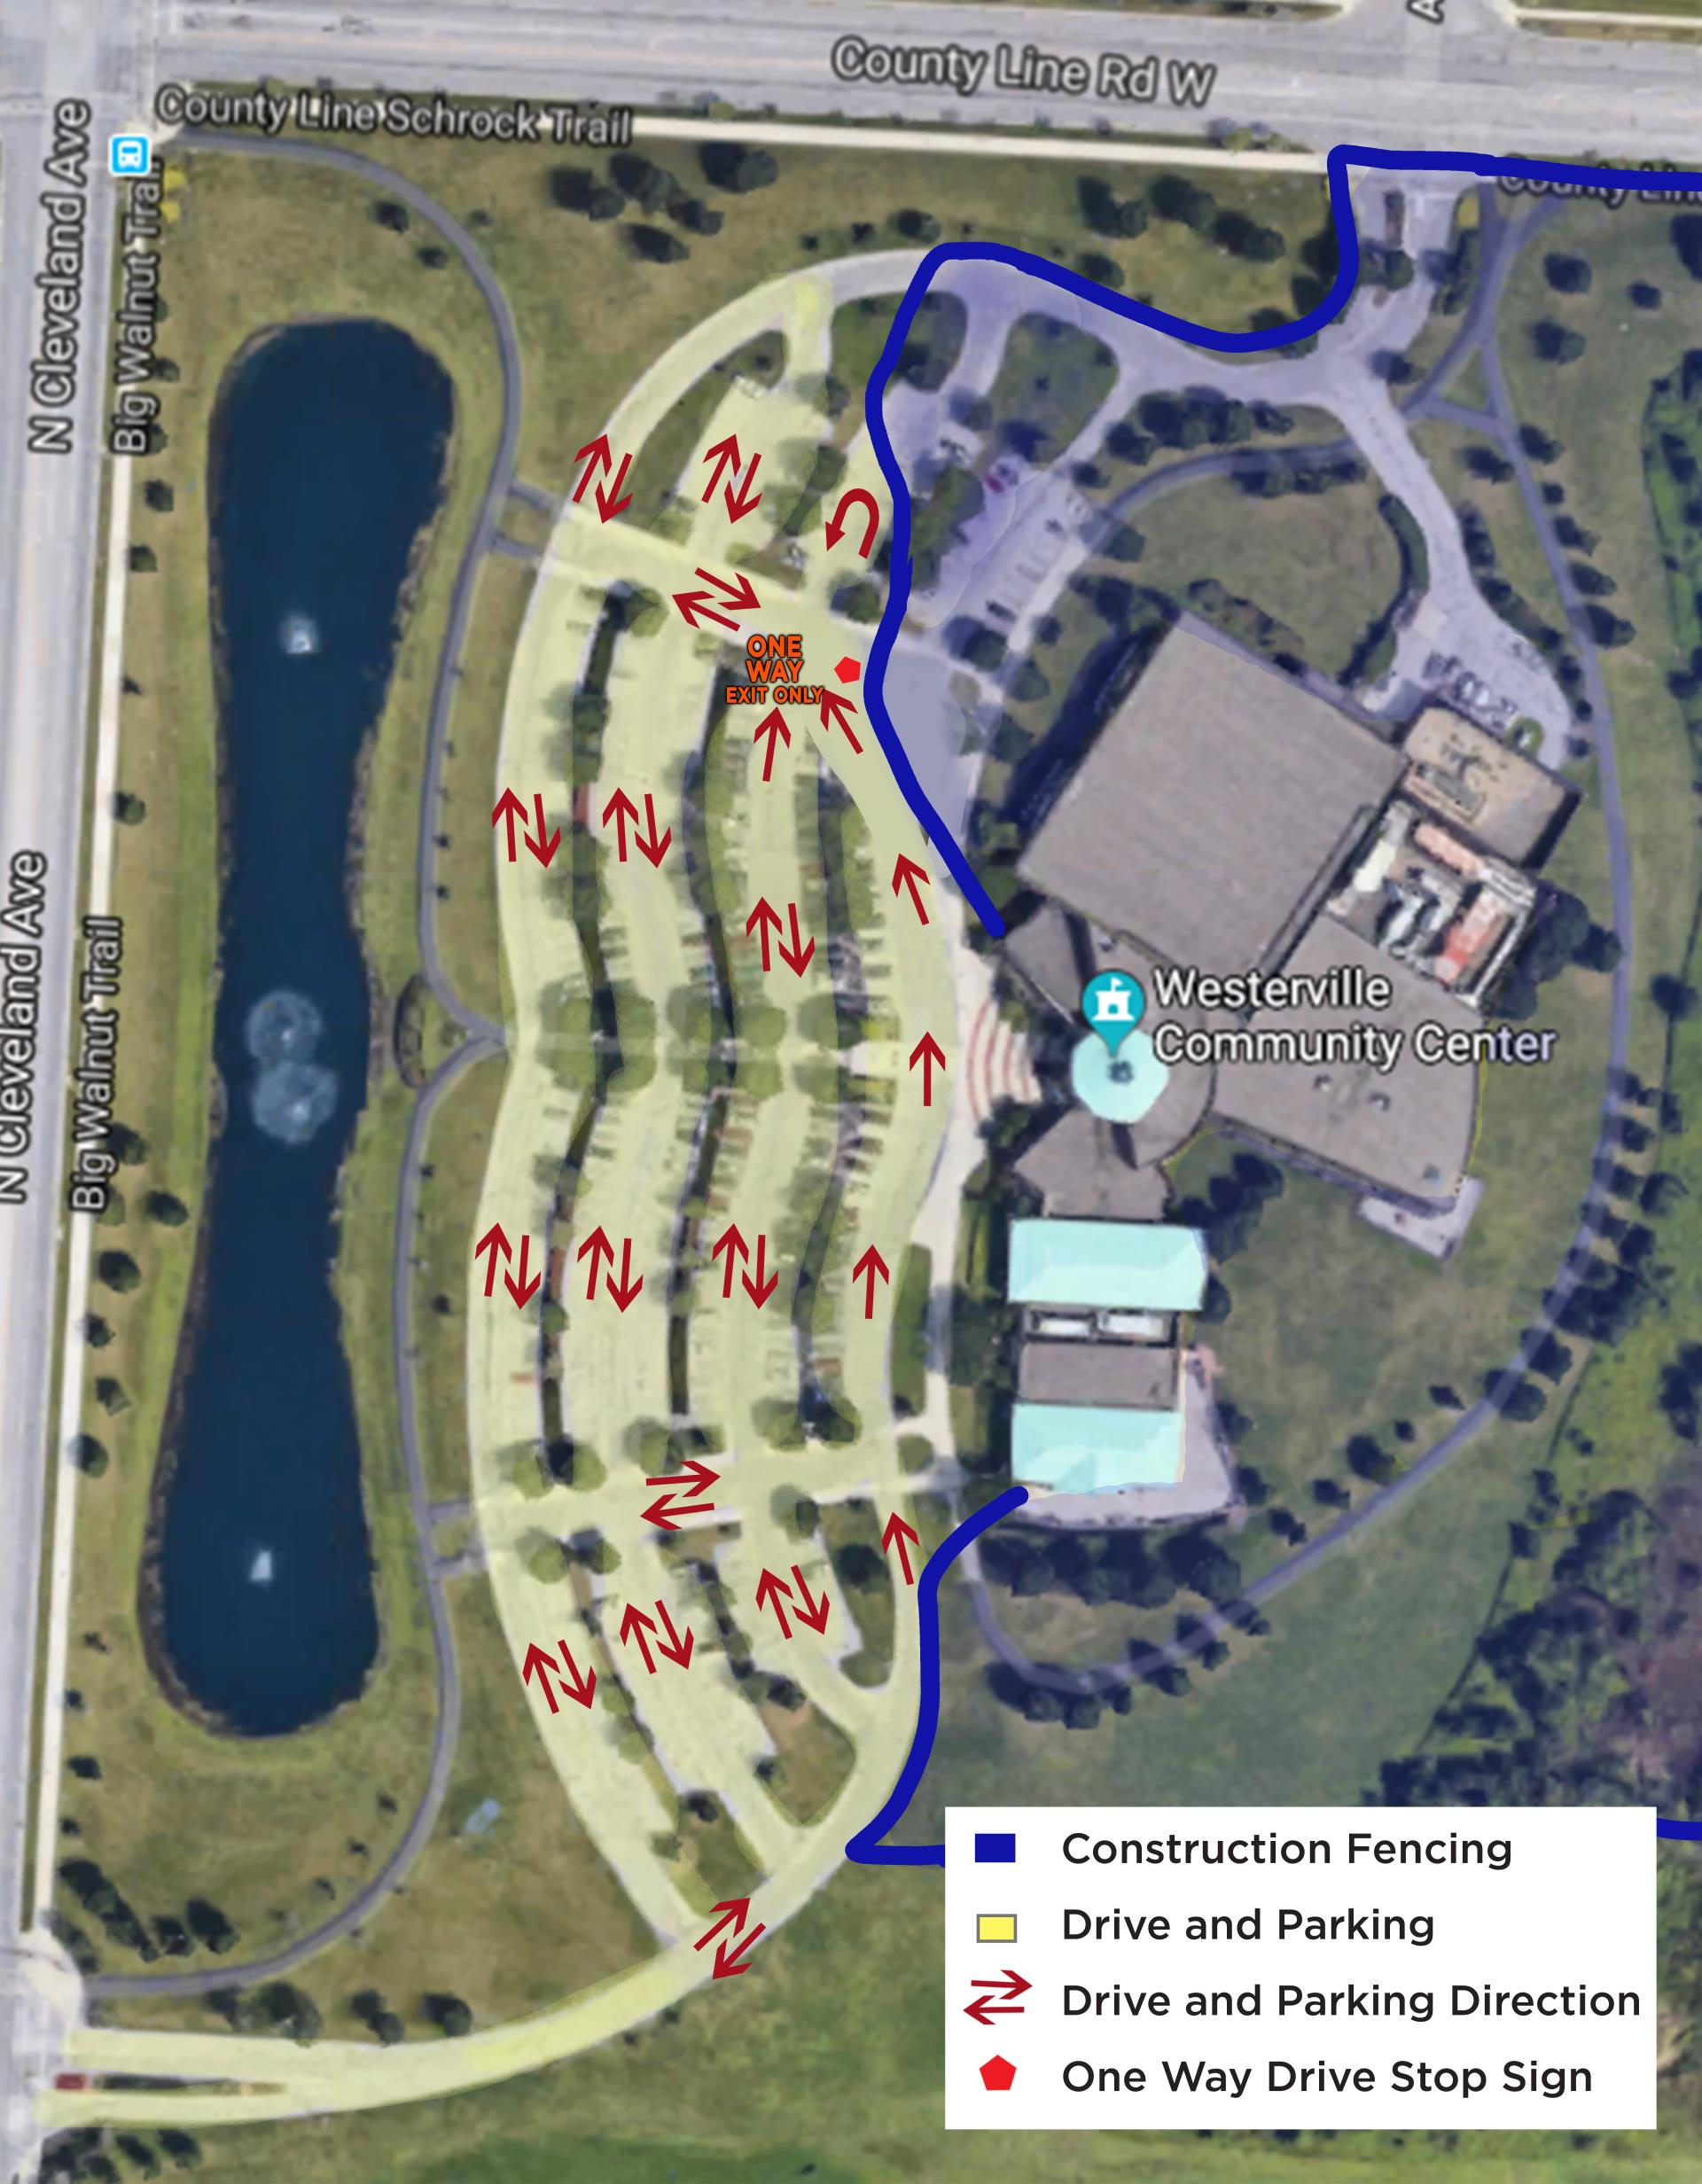 Community Center Map for parking